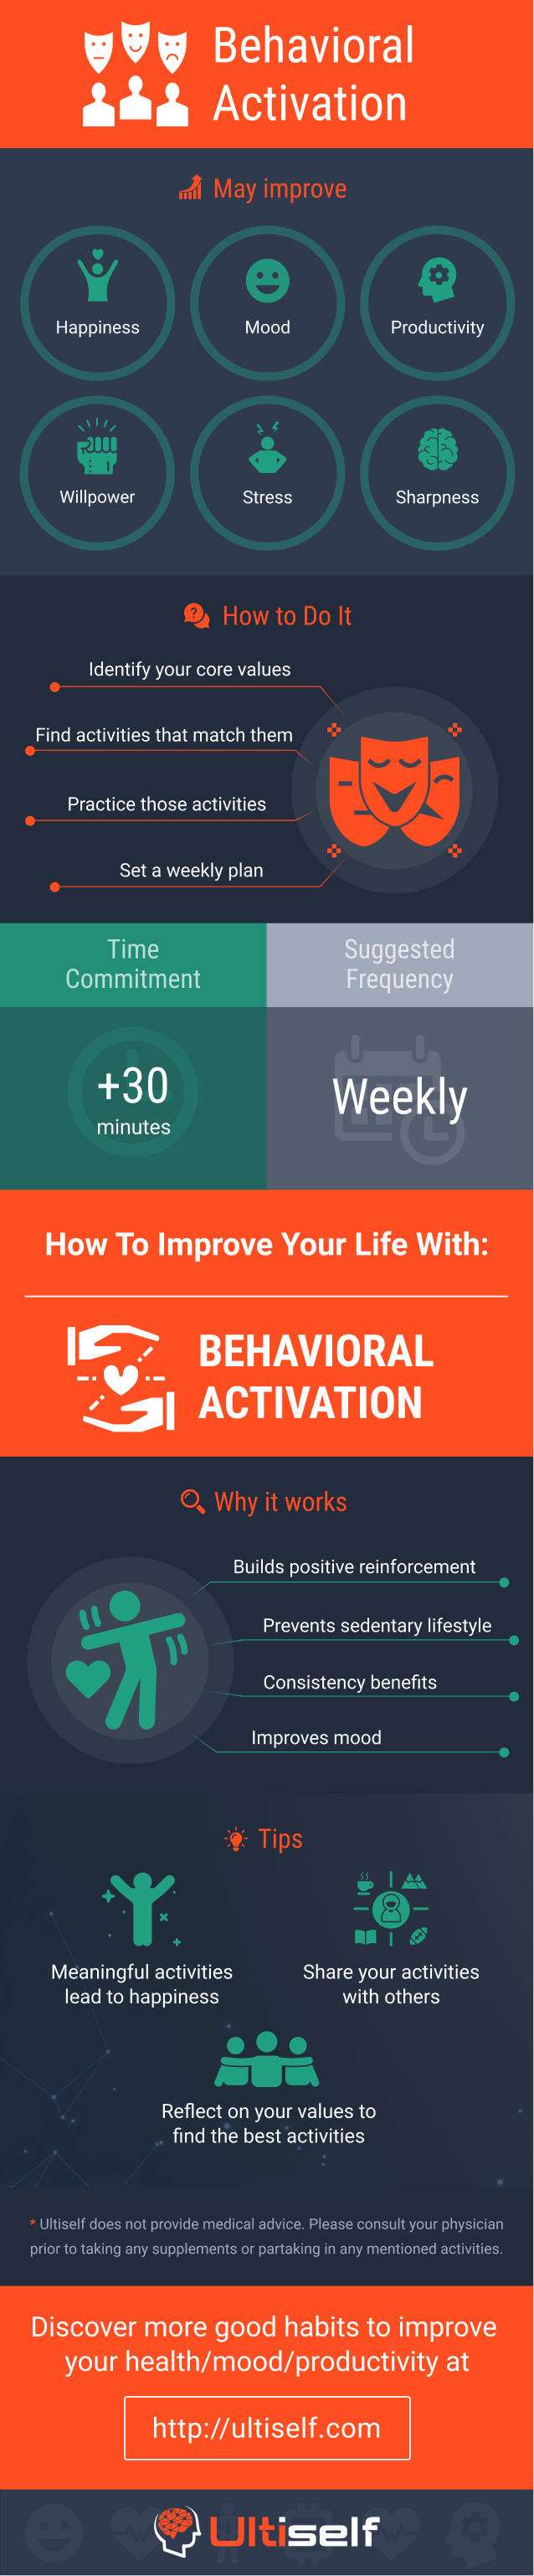 Behavioral Activation infographic